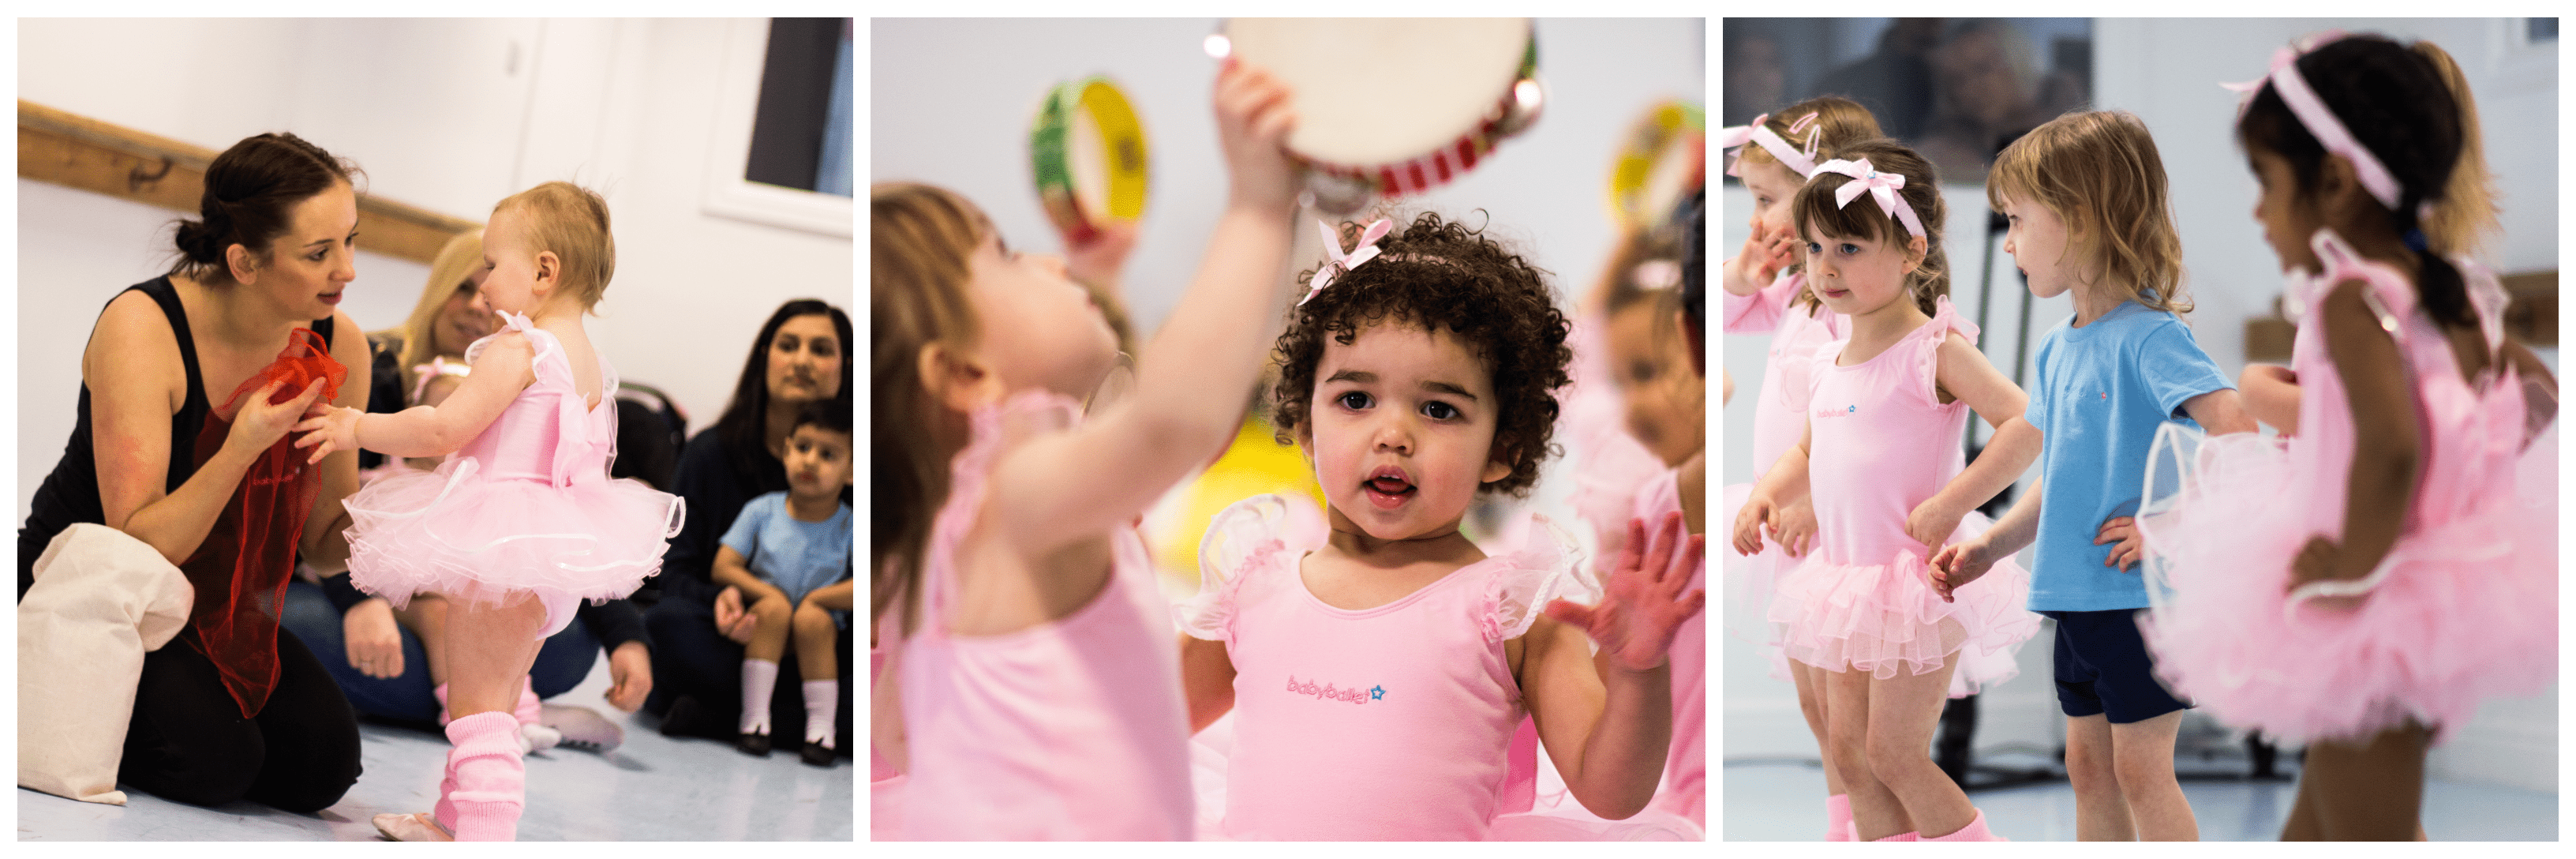 babyballet dance classes in worsley